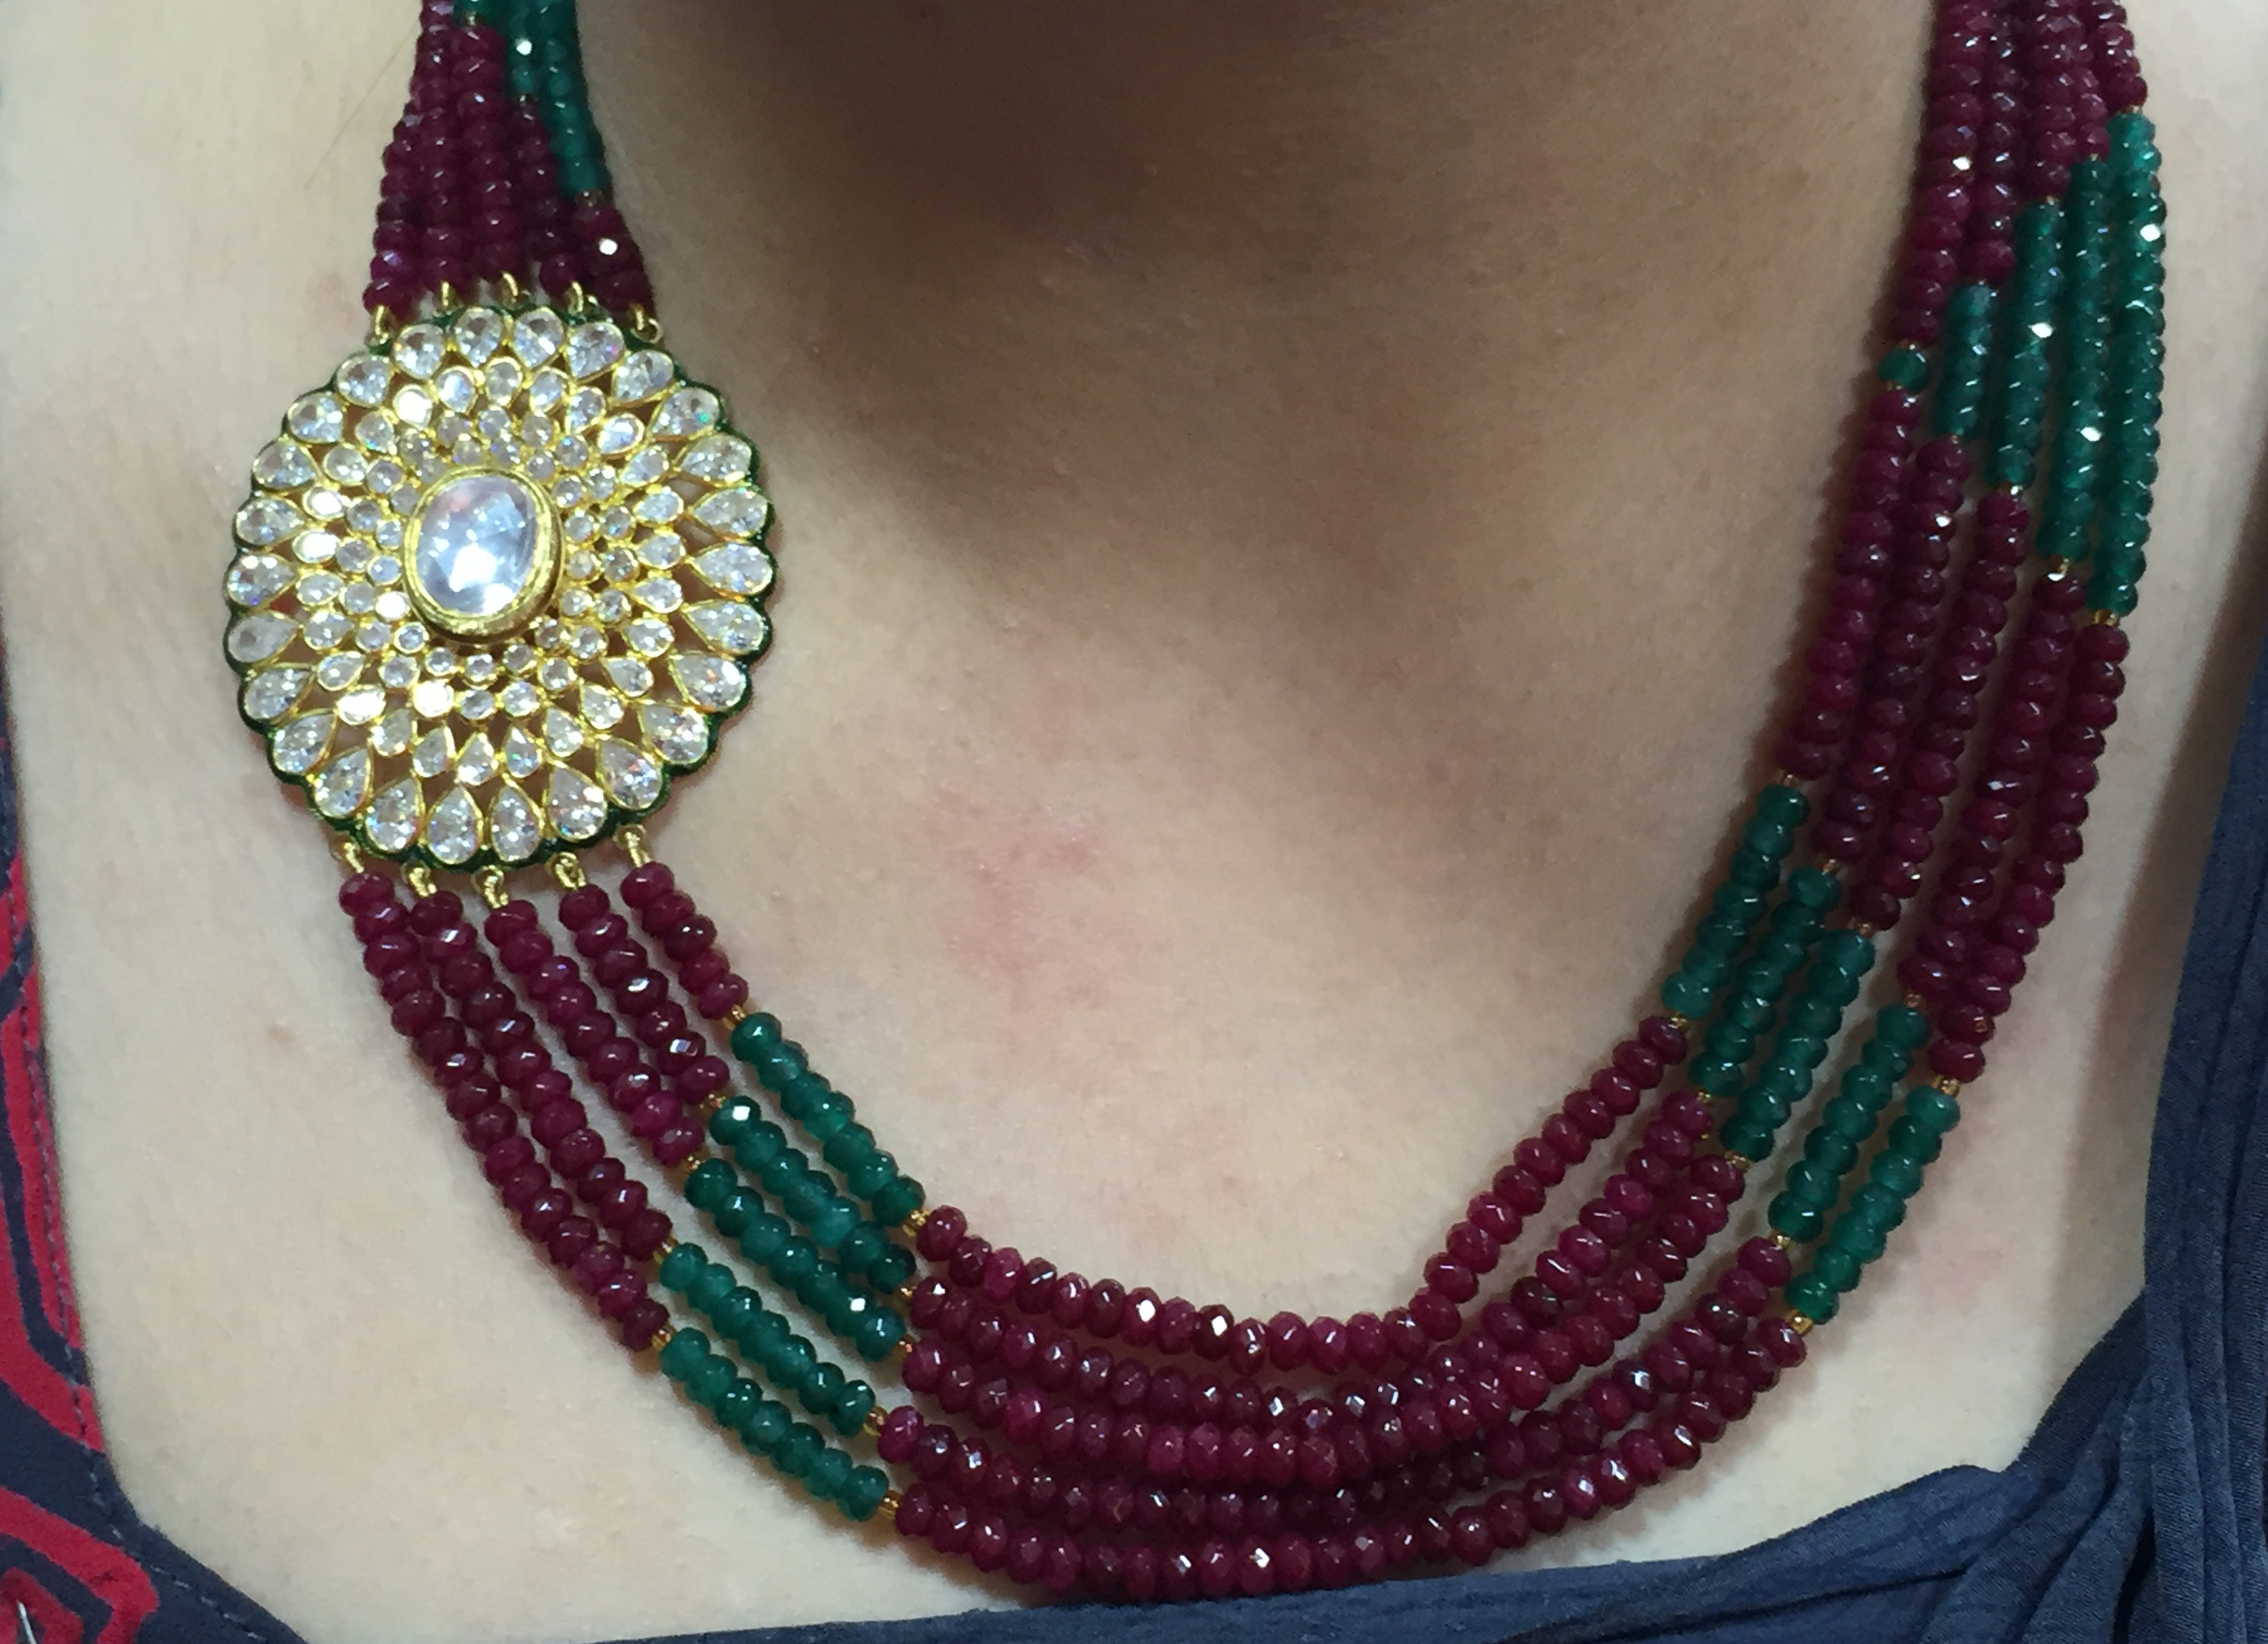 And I got Neetu ji from the store team to model the Ruby-Emerald with AD Necklace. PC- Style Prer